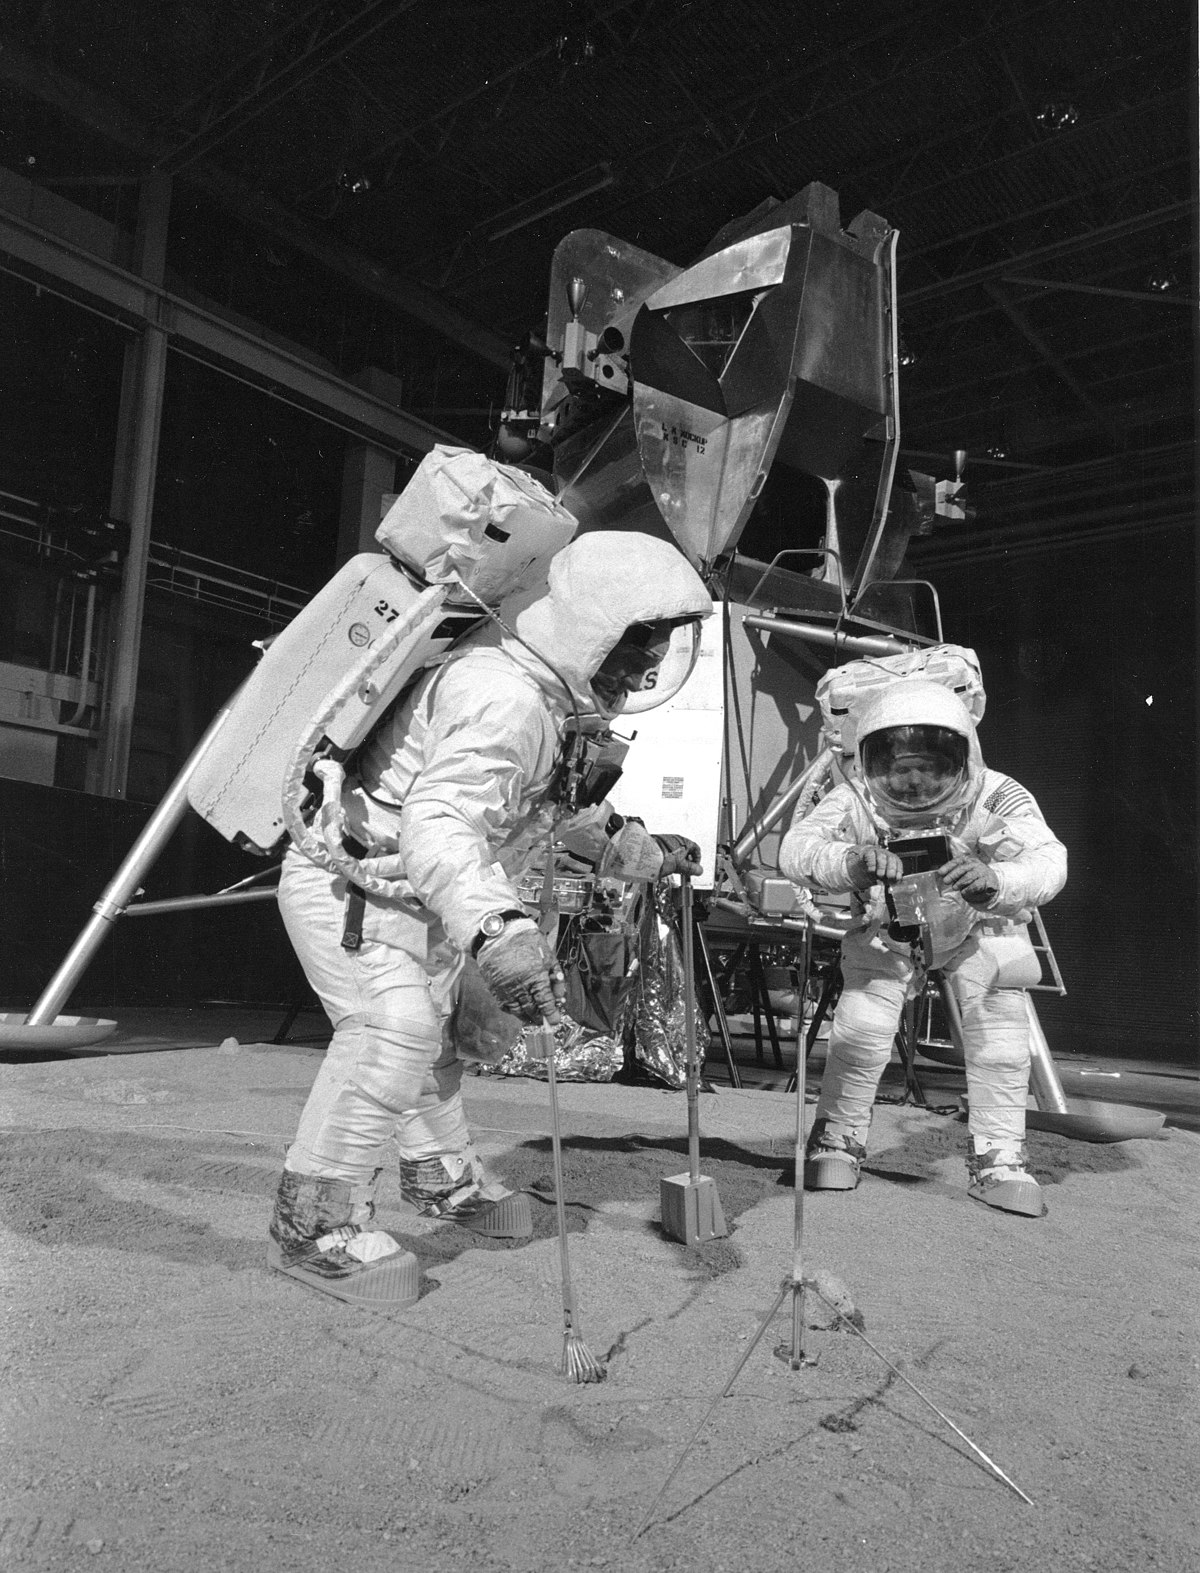 apollo 11 moon landing hoax - photo #19